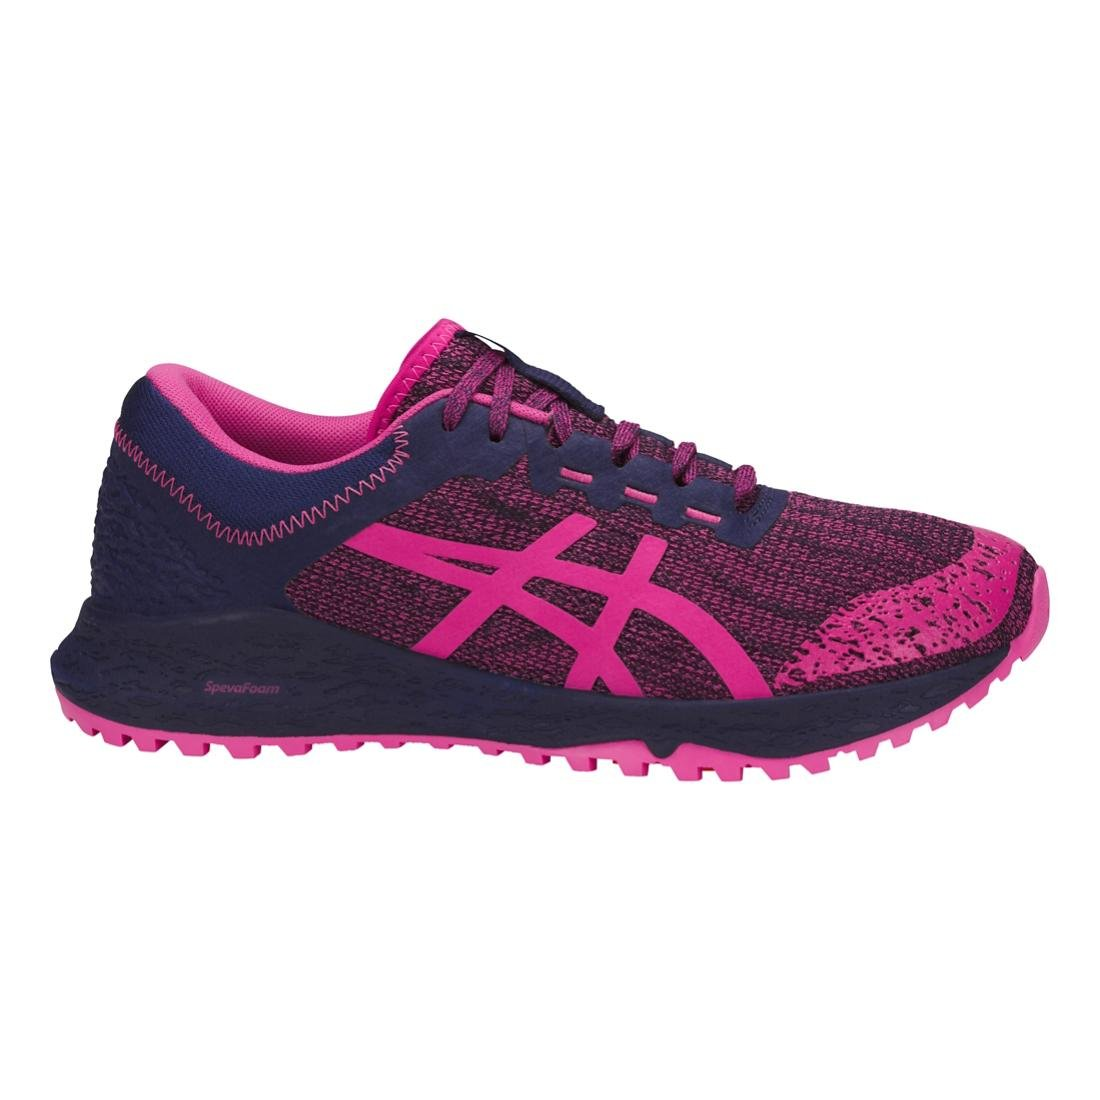 ASICS Women's Alpine XT B(M) Running Shoe B074CJ4G3P 6 B(M) XT US|Fuchsia Purple/Fuchsia Purple/Indigo Blue d424cc